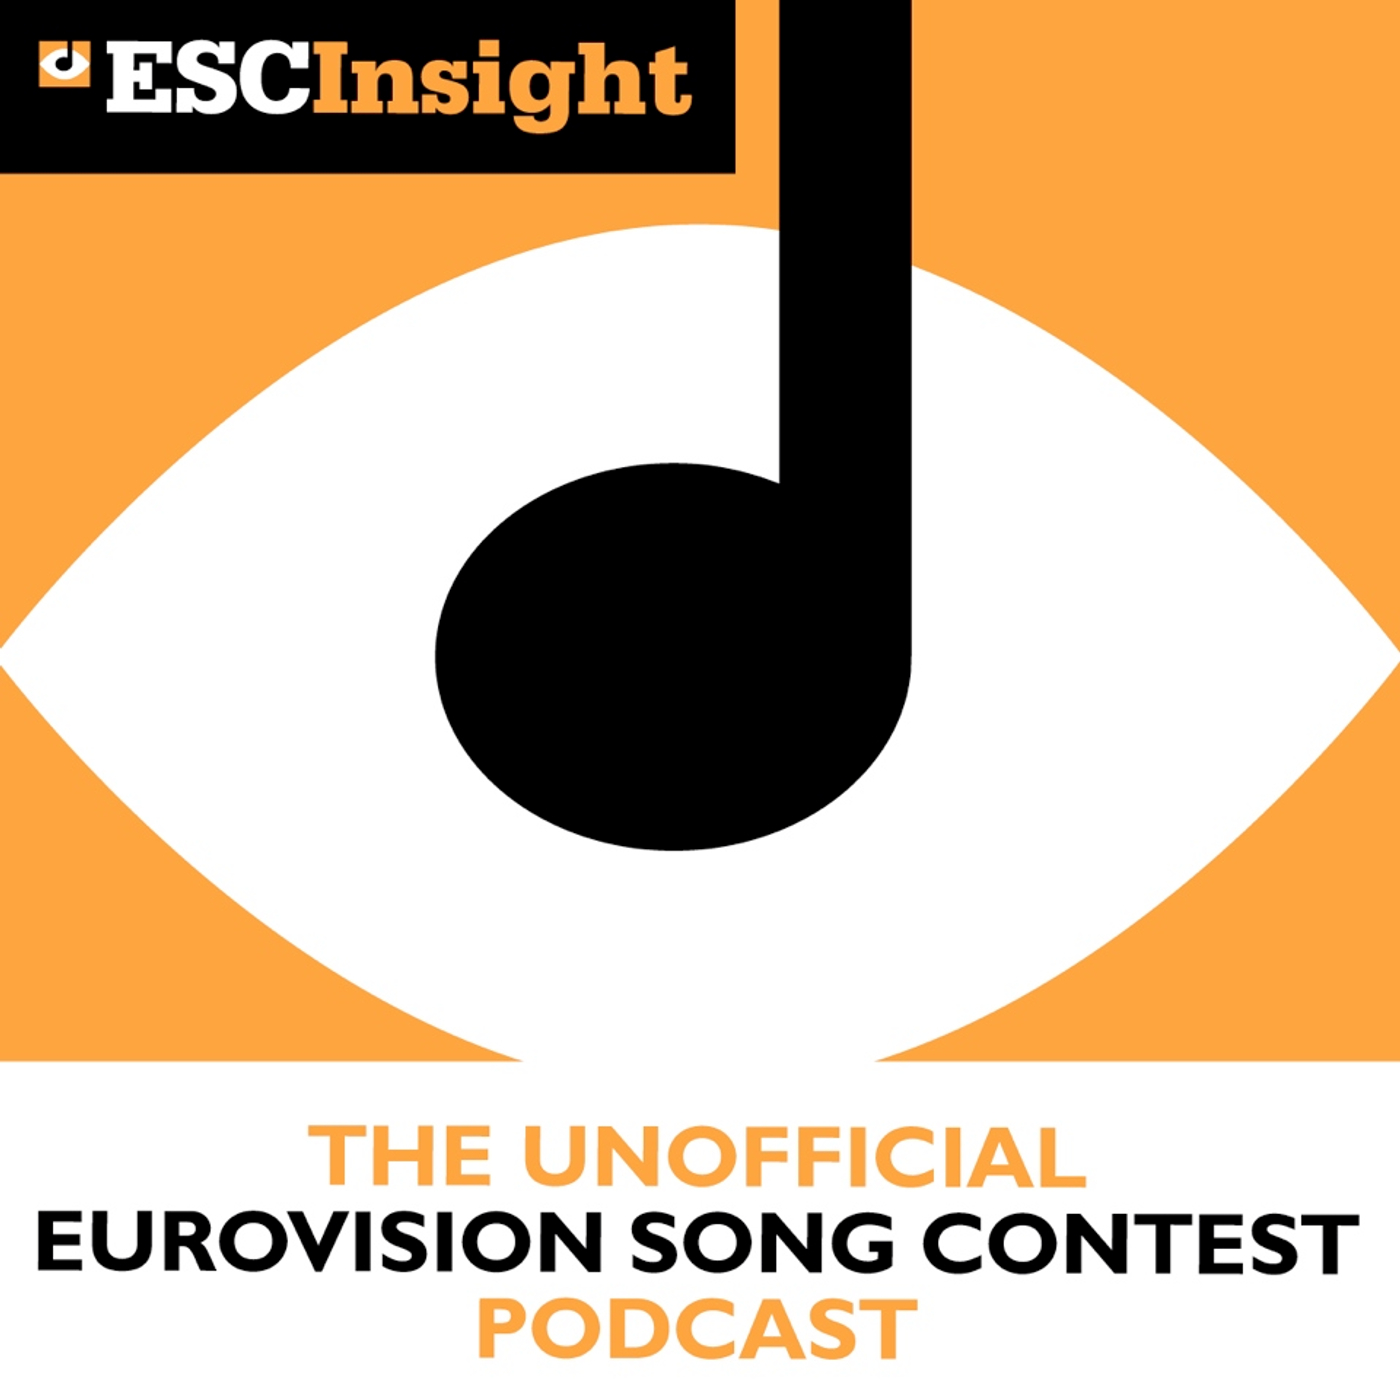 ESC Insight: The Unofficial Eurovision Song Contest Podcast